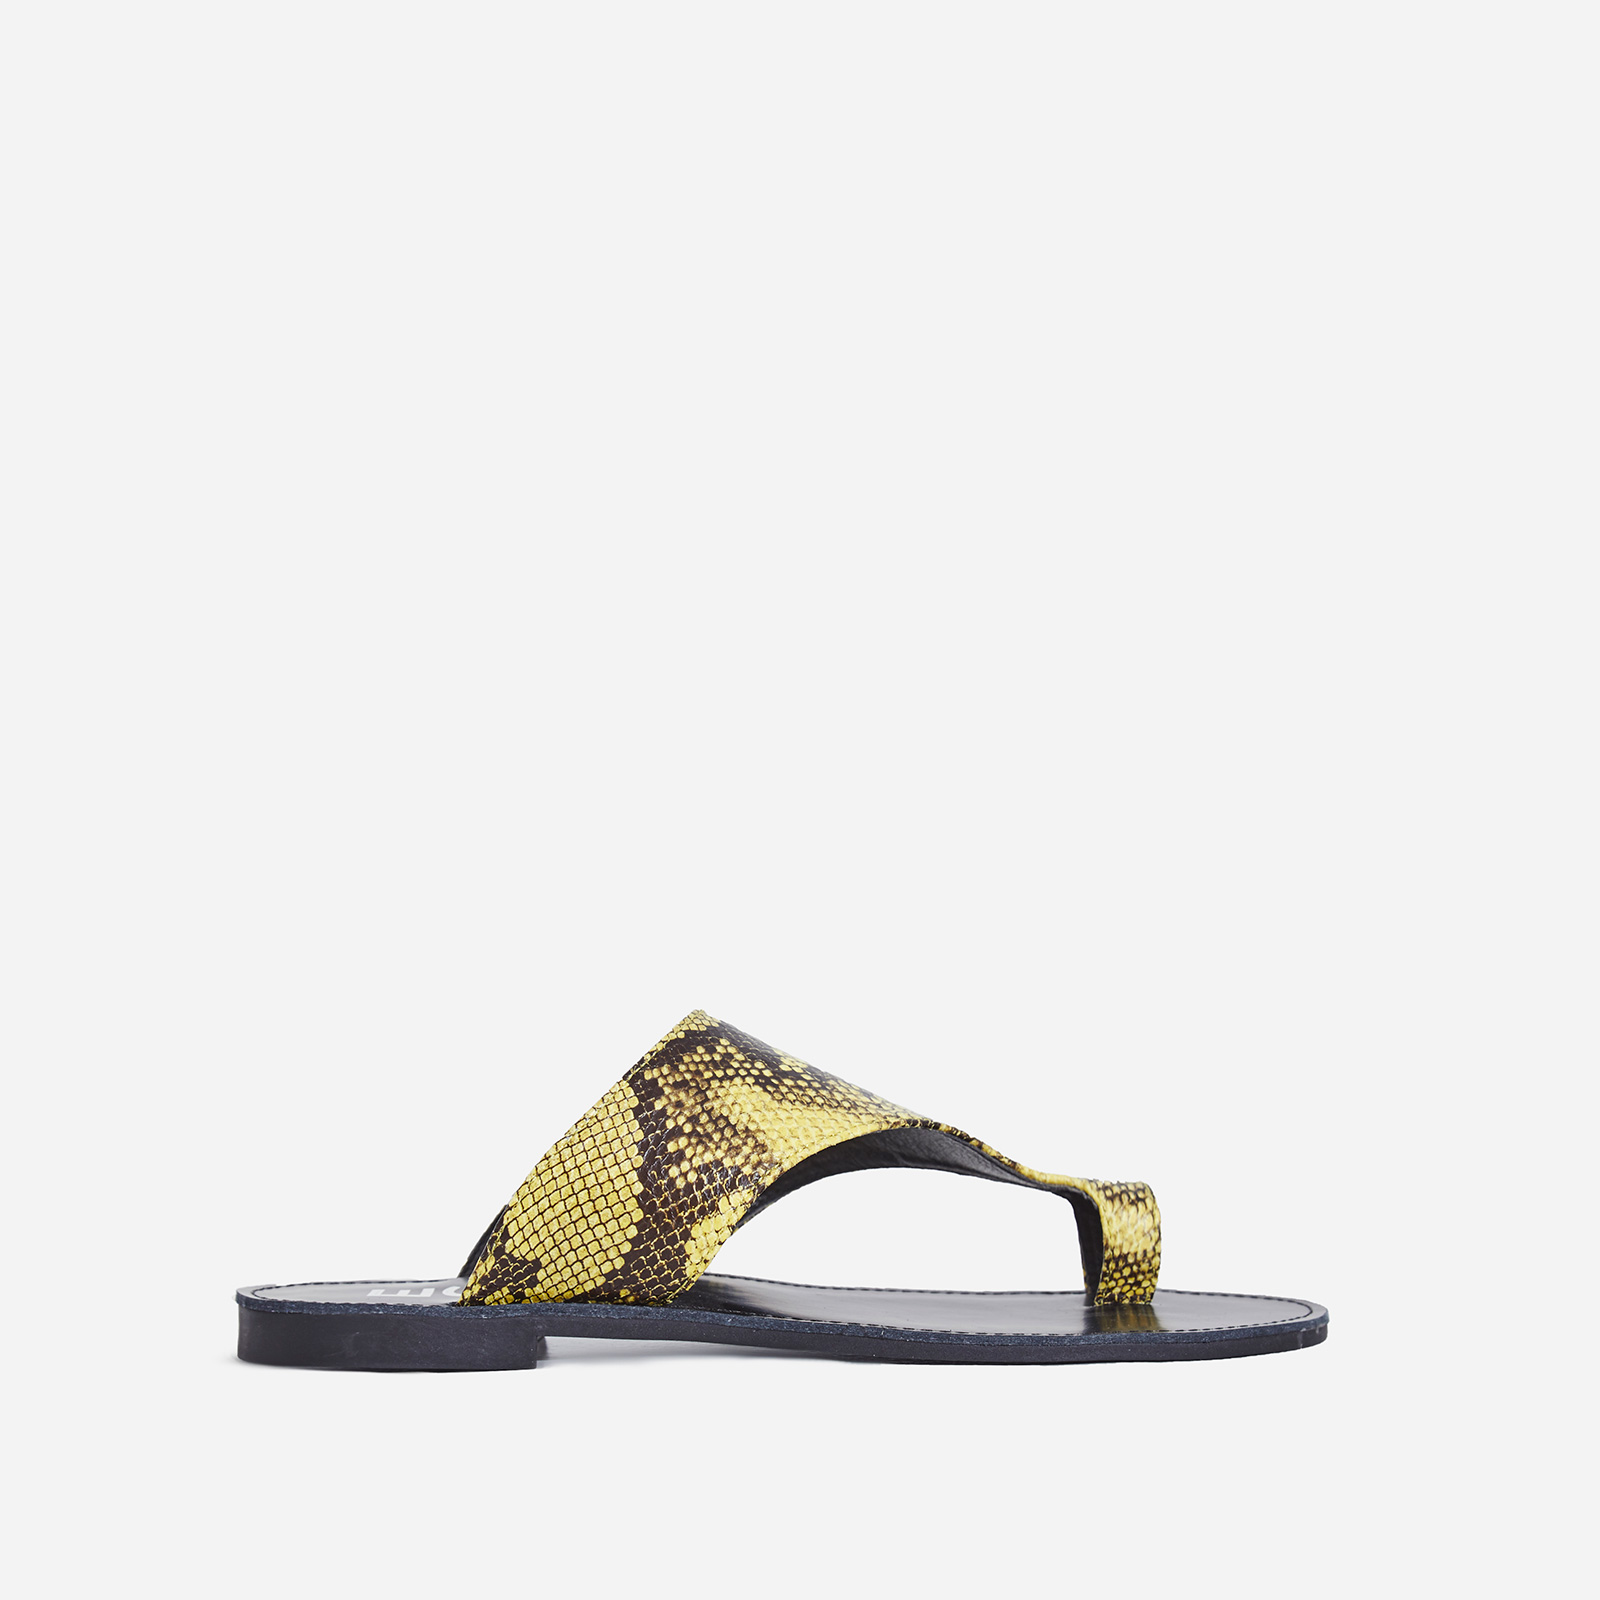 Cleo Toe Strap Slider In Yellow Snake Print Faux Leather